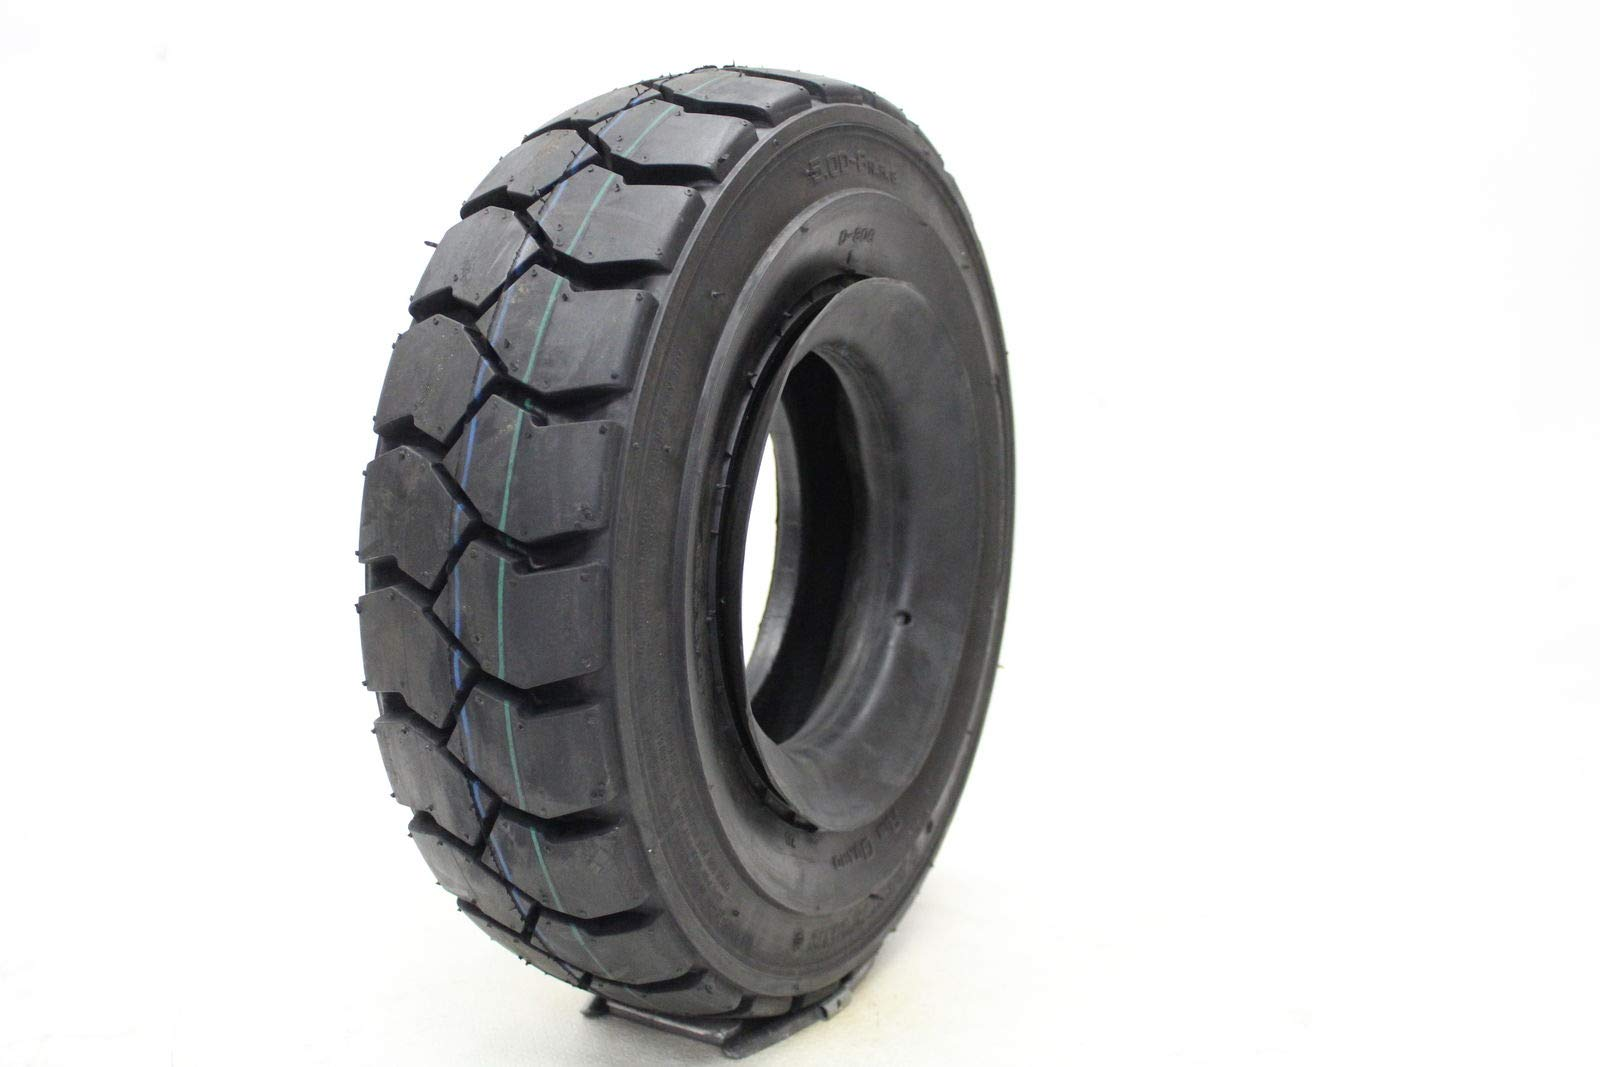 Eldorado Premium Industrial Lug+ Construction Vehicle Radial Tire-7/112 300M